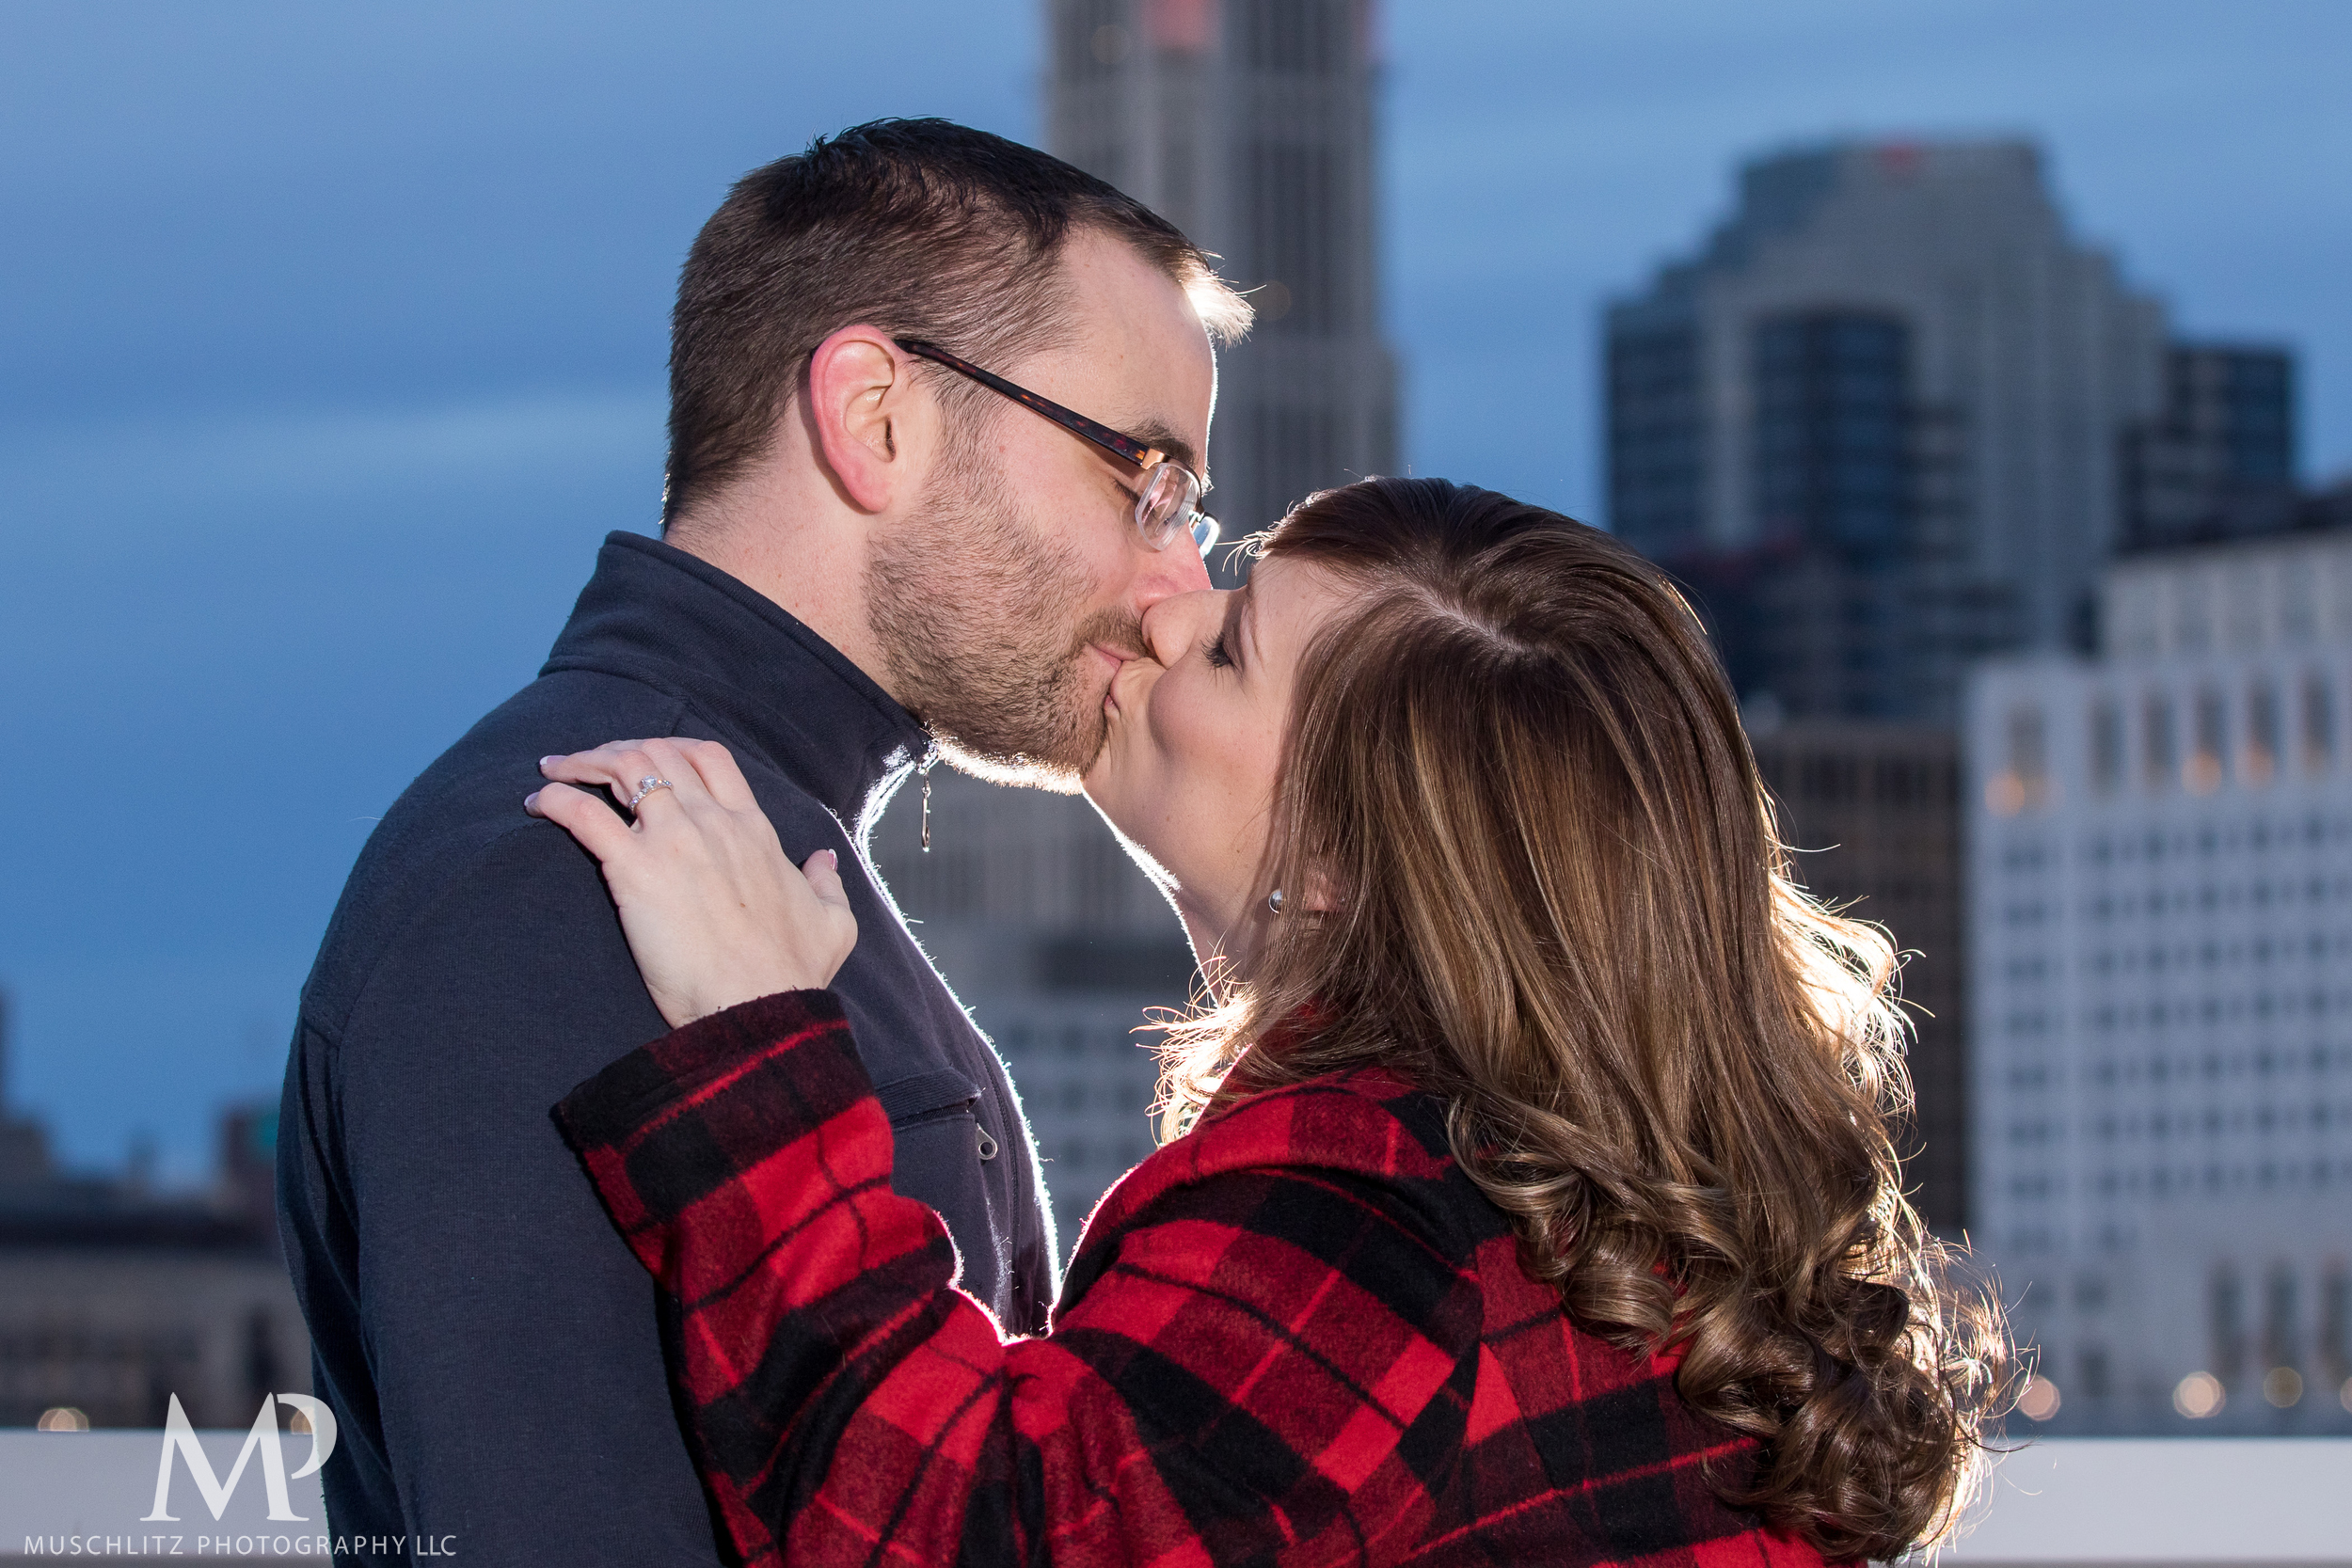 bicentennial-park-engagement-session-holiday-portraits-columbus-ohio-037.JPG